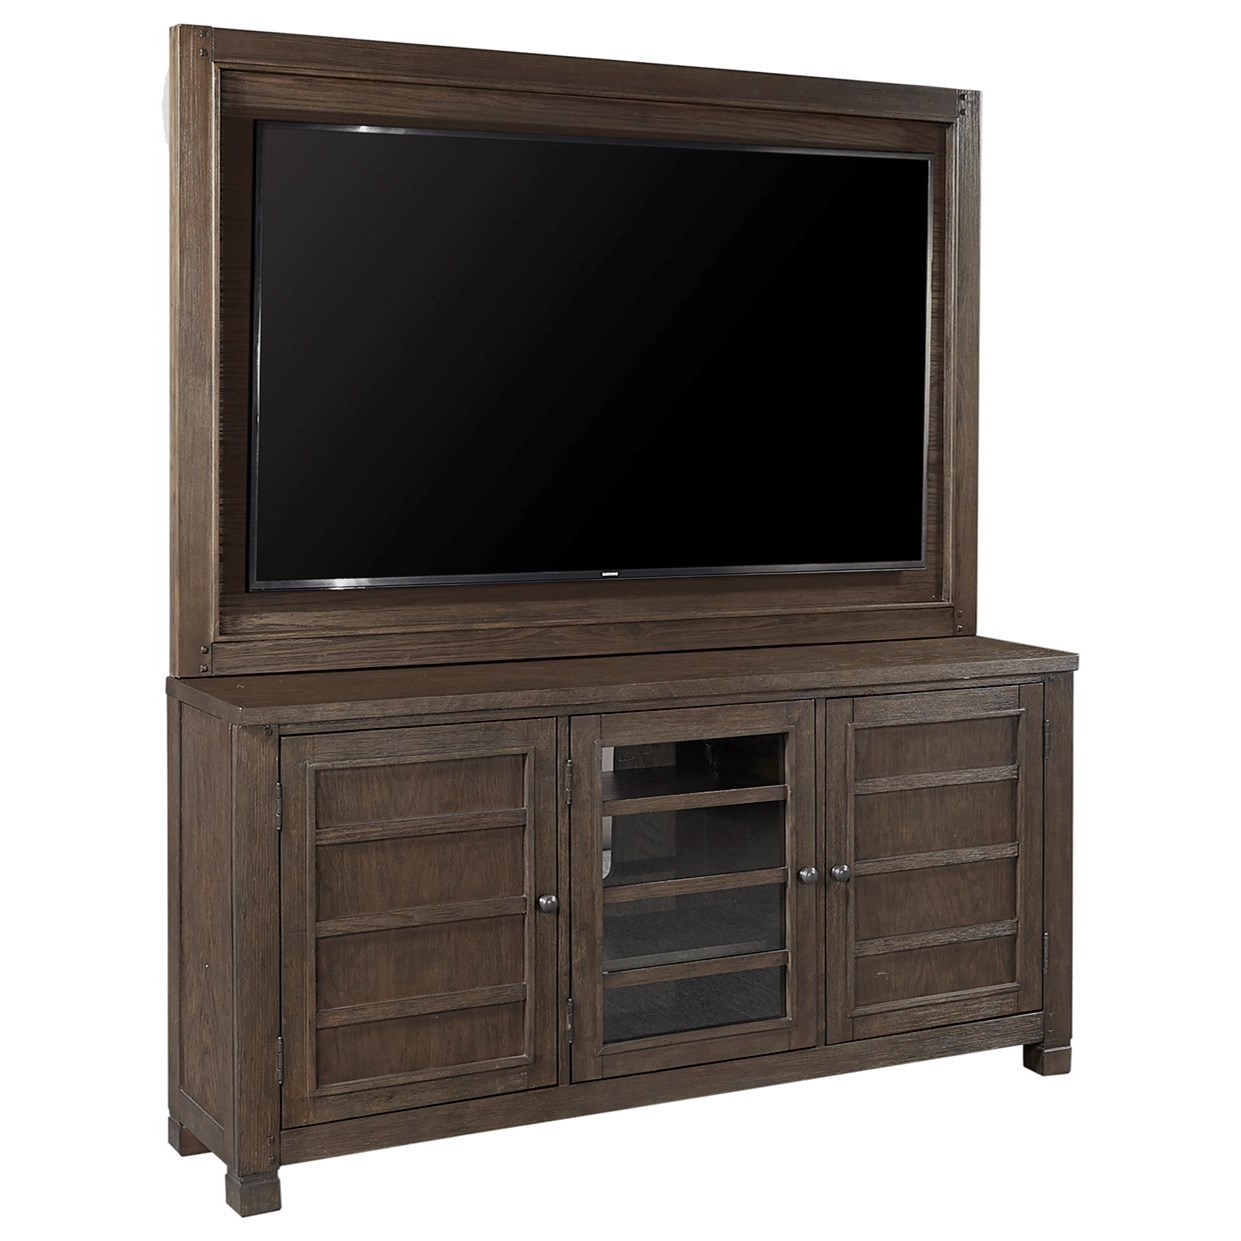 "Tucker 65"" Console with TV Backer by Aspenhome at Walker's Furniture"